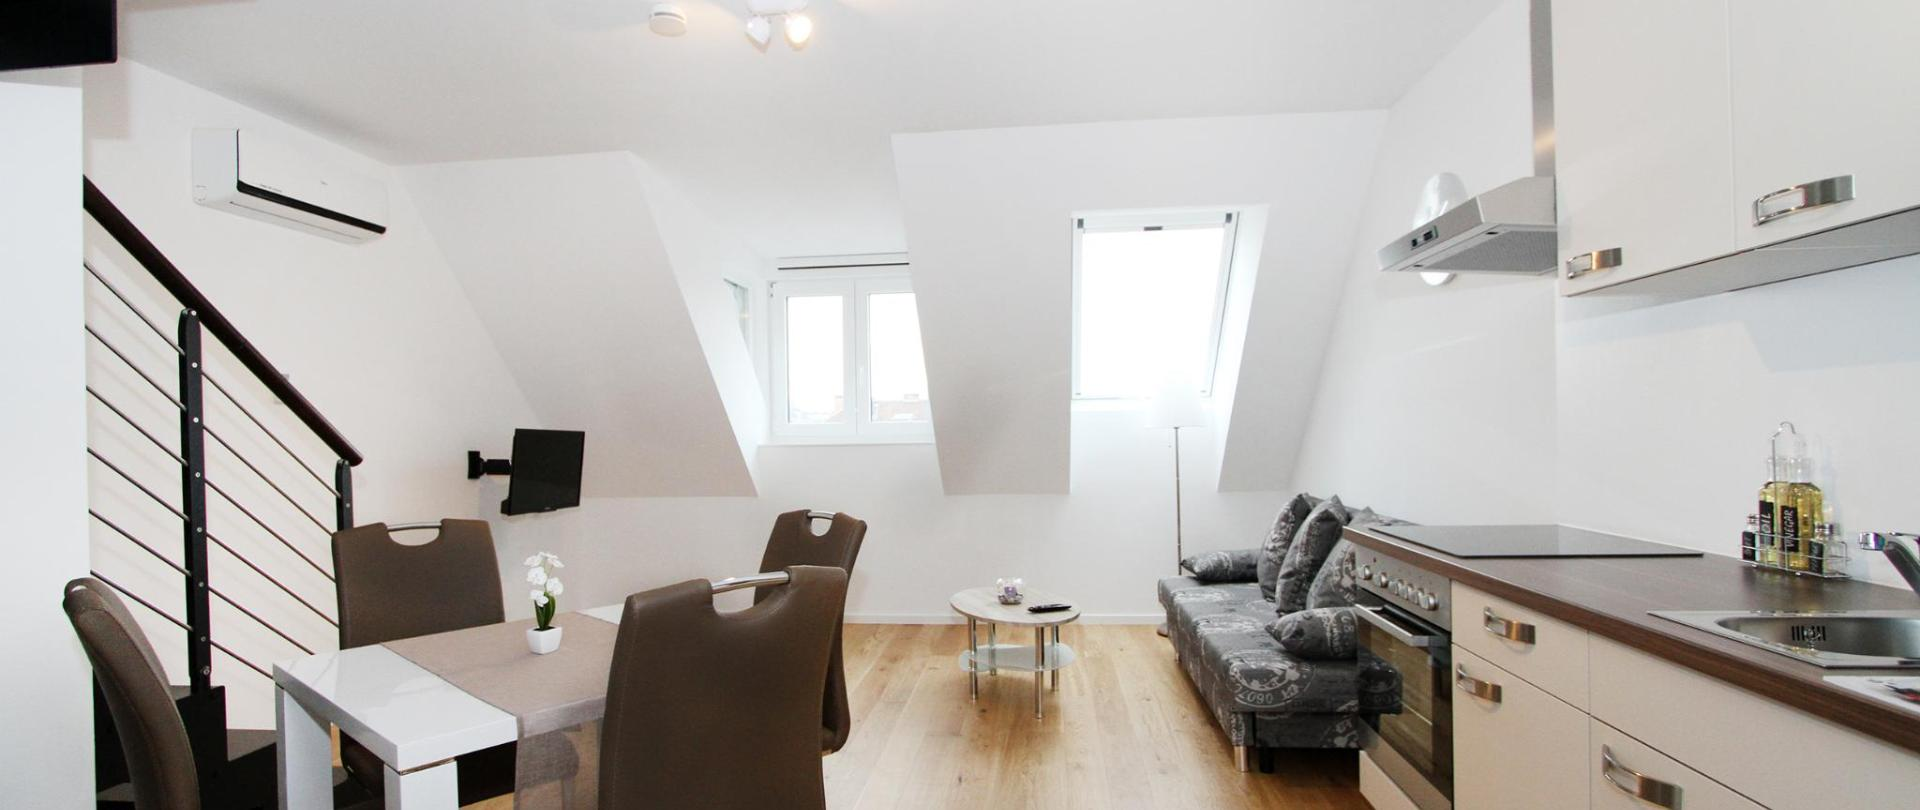 AP 526 - Large Duplex Apartment with terrace.jpg